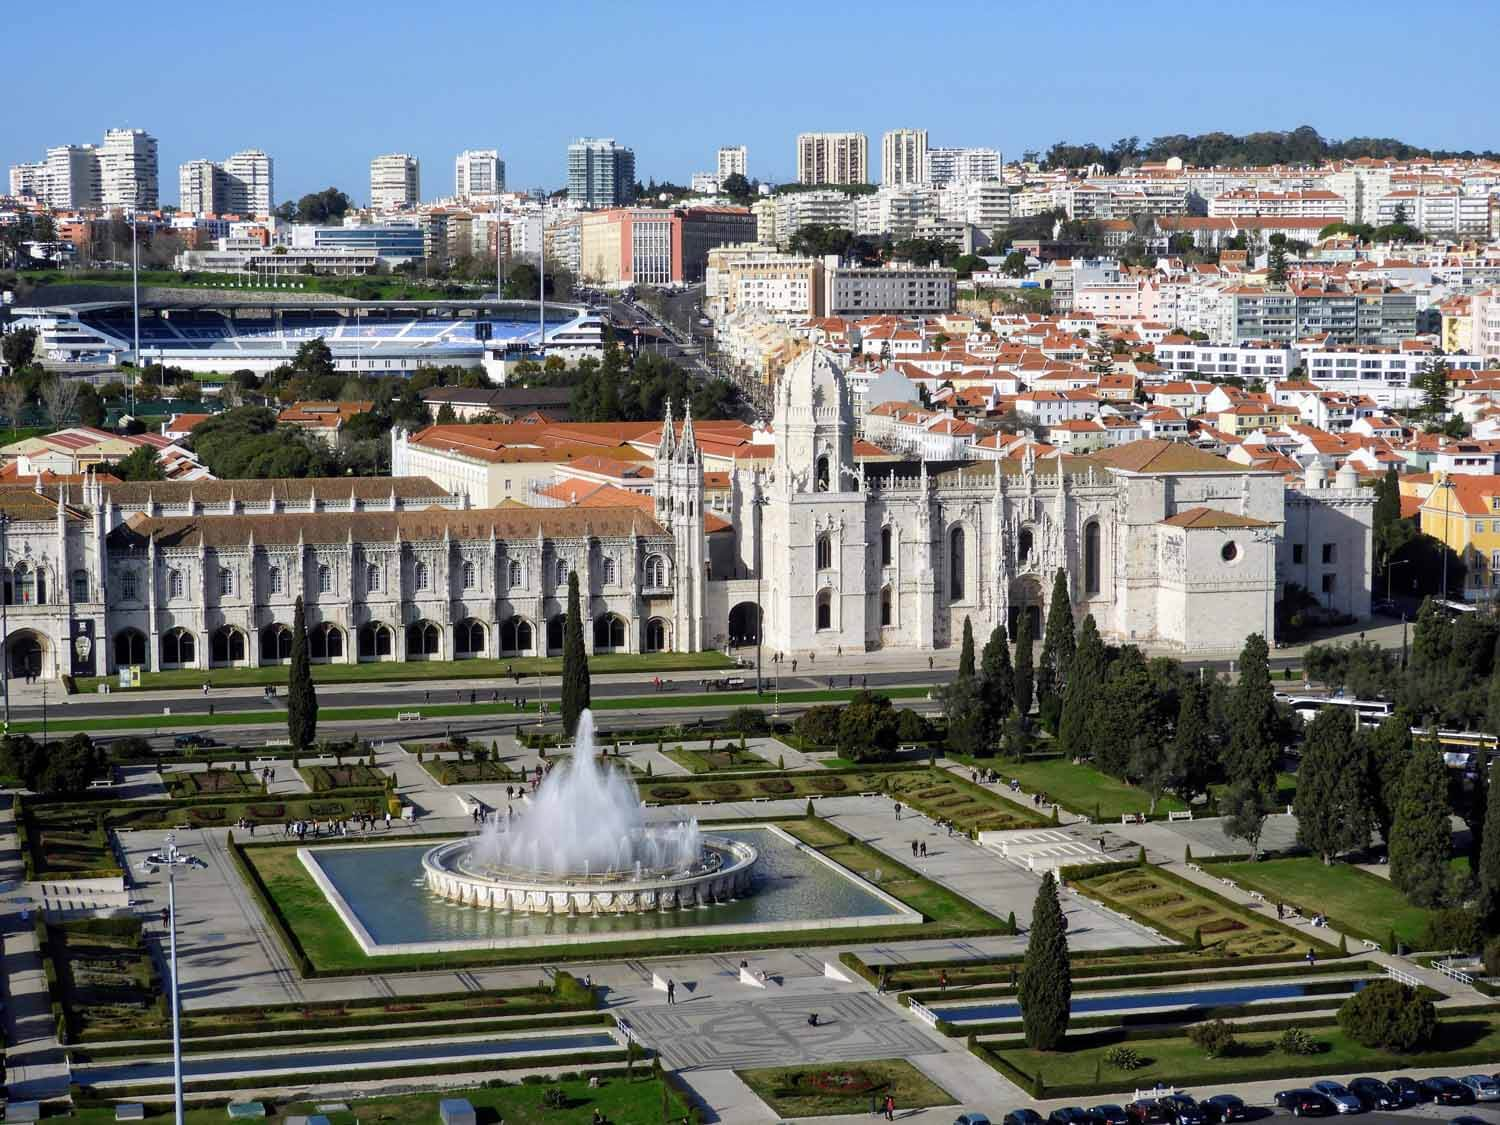 Belém - No trip to Lisbon is complete without exloring the neighboring area of Belém. We have a page updated all about it!